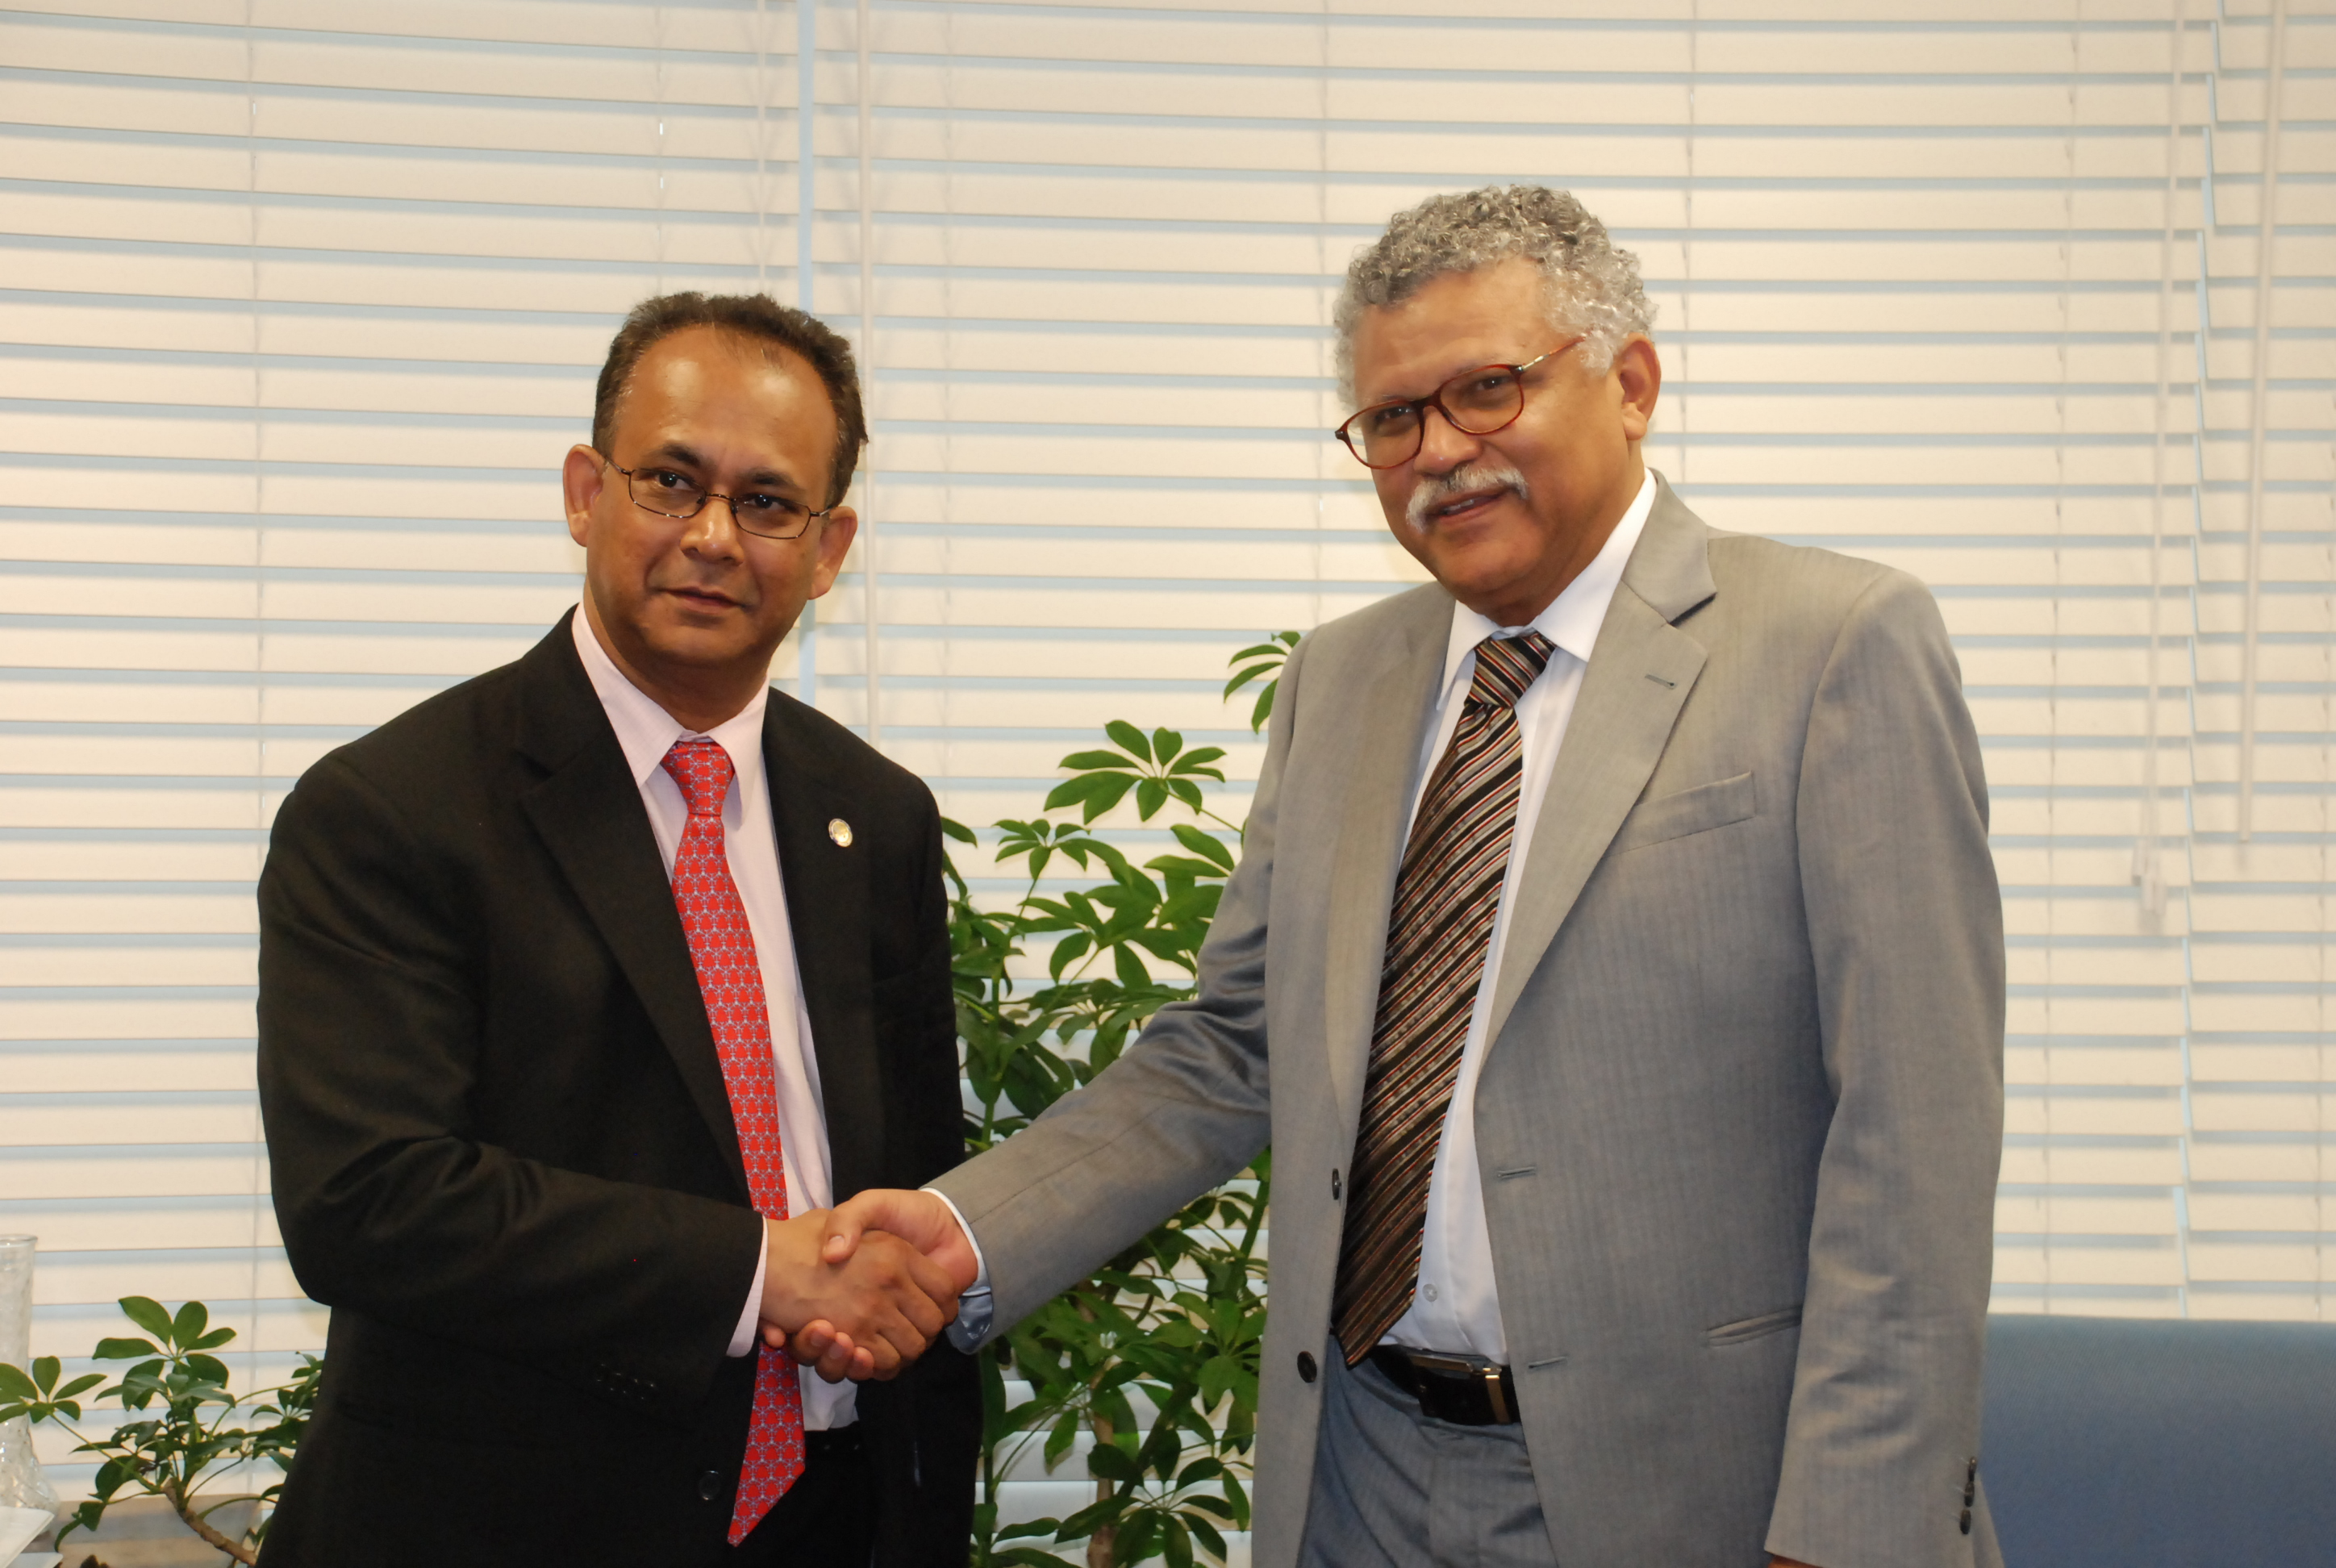 OAS Assistant Secretary General, Ambassador Albert R. Ramdin, pays a courtesy call on the new Secretary General of the Association of Caribbean States (ACS), Dr. Alfonso Múnera, to discuss strengthening inter-institutional cooperation.